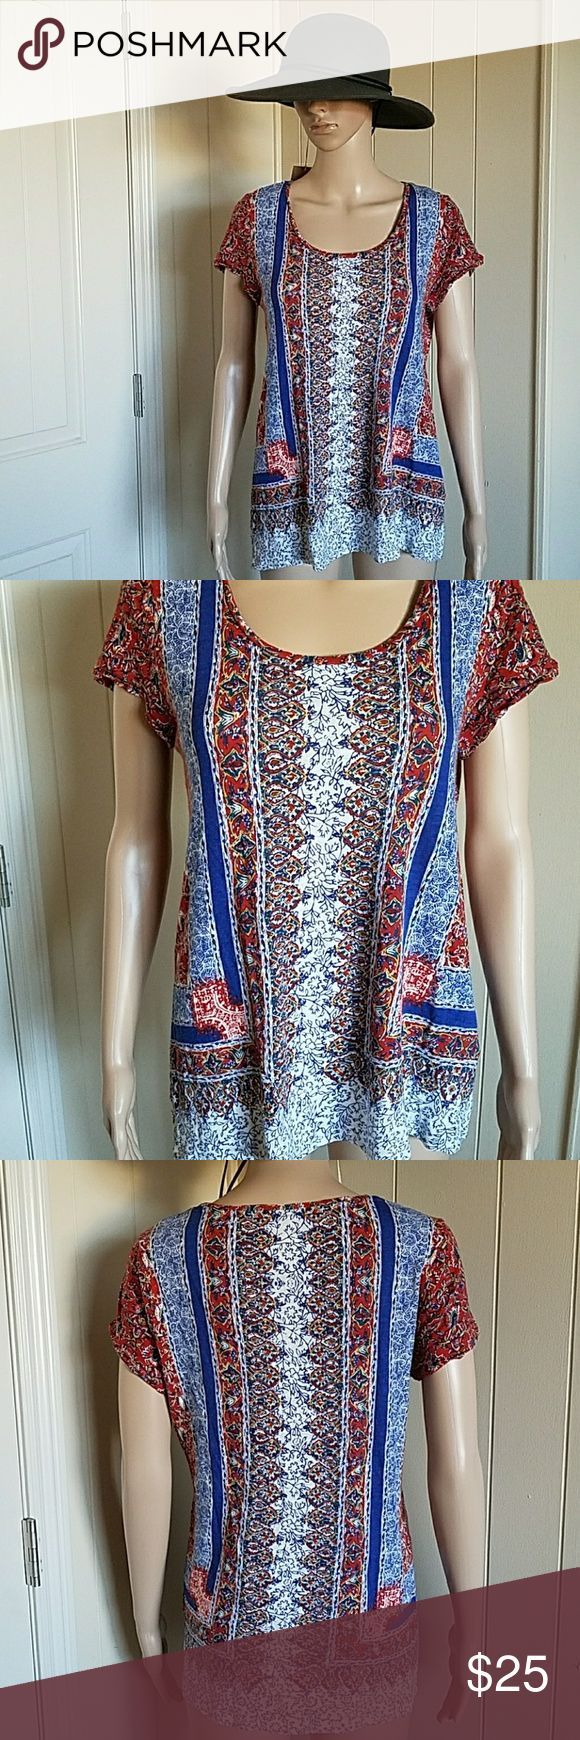 Lucky Brand Scarf Print Tee Red and blue with gold details. Hippie, boho style. Would look great with jean shorts, skinny jeans, or leggings. In good condition. Lucky Brand Tops Tees - Short Sleeve